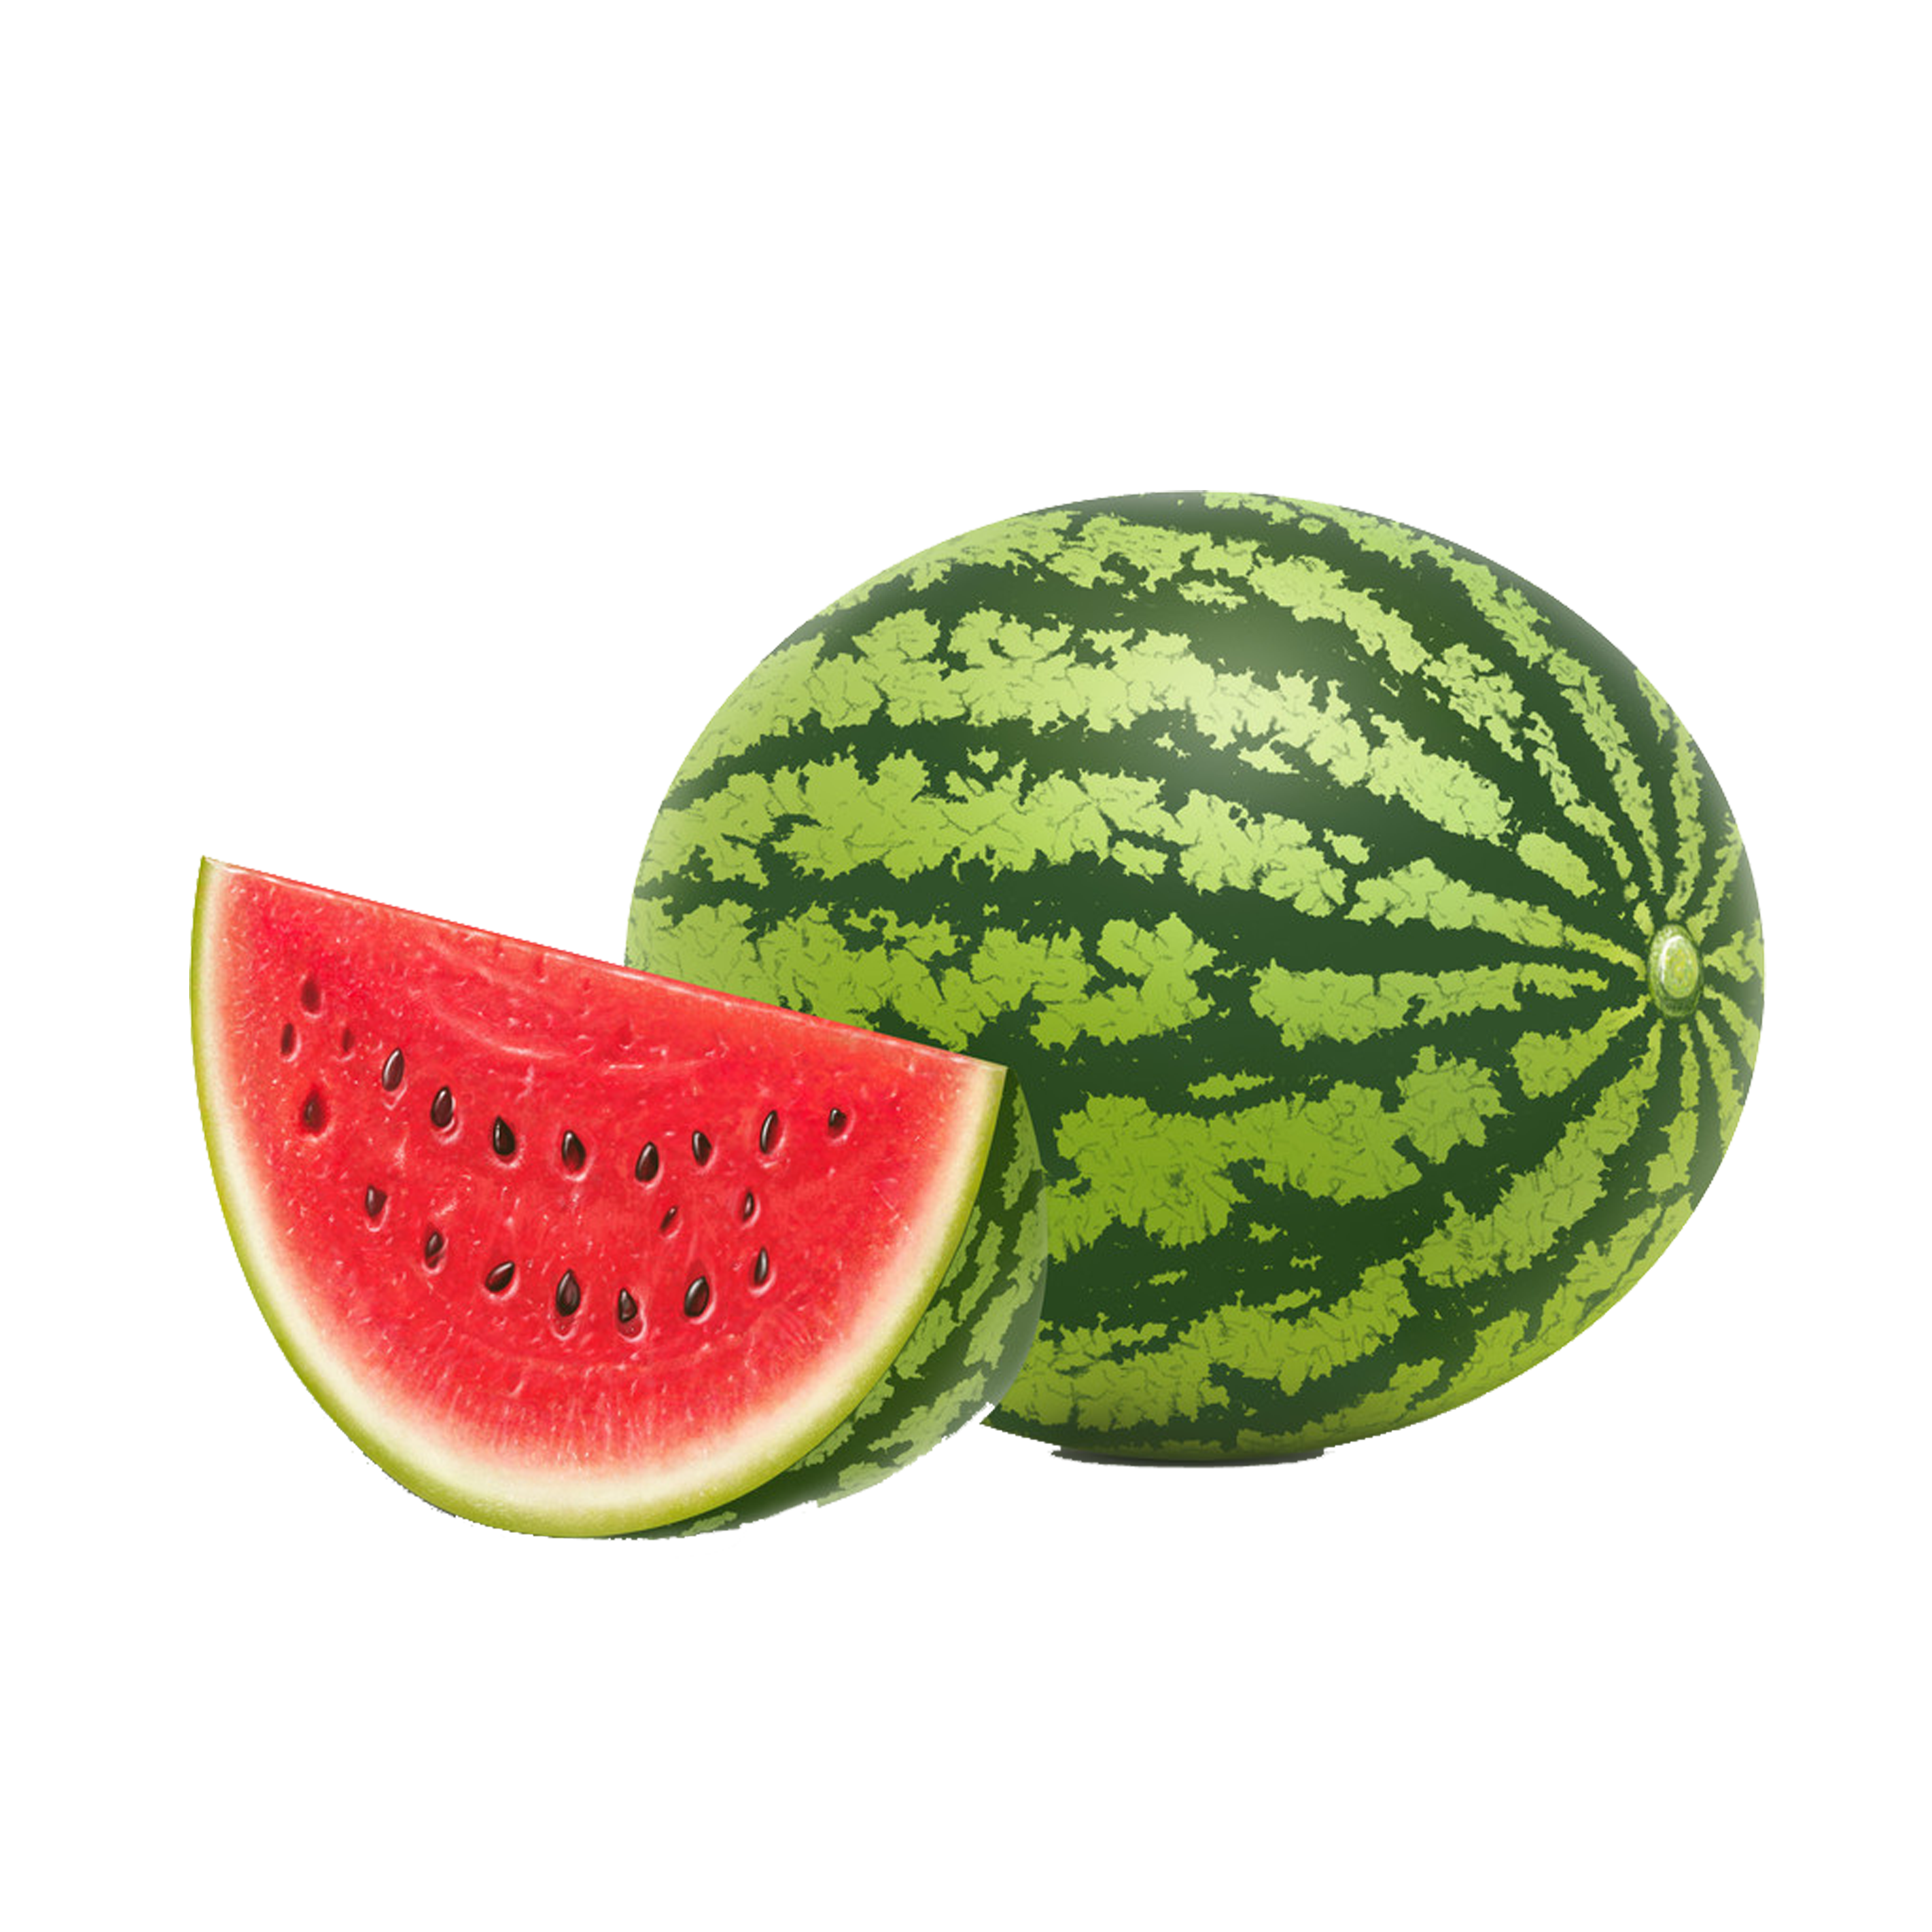 Watermelon clipart green fruit vegetable. Seed png download